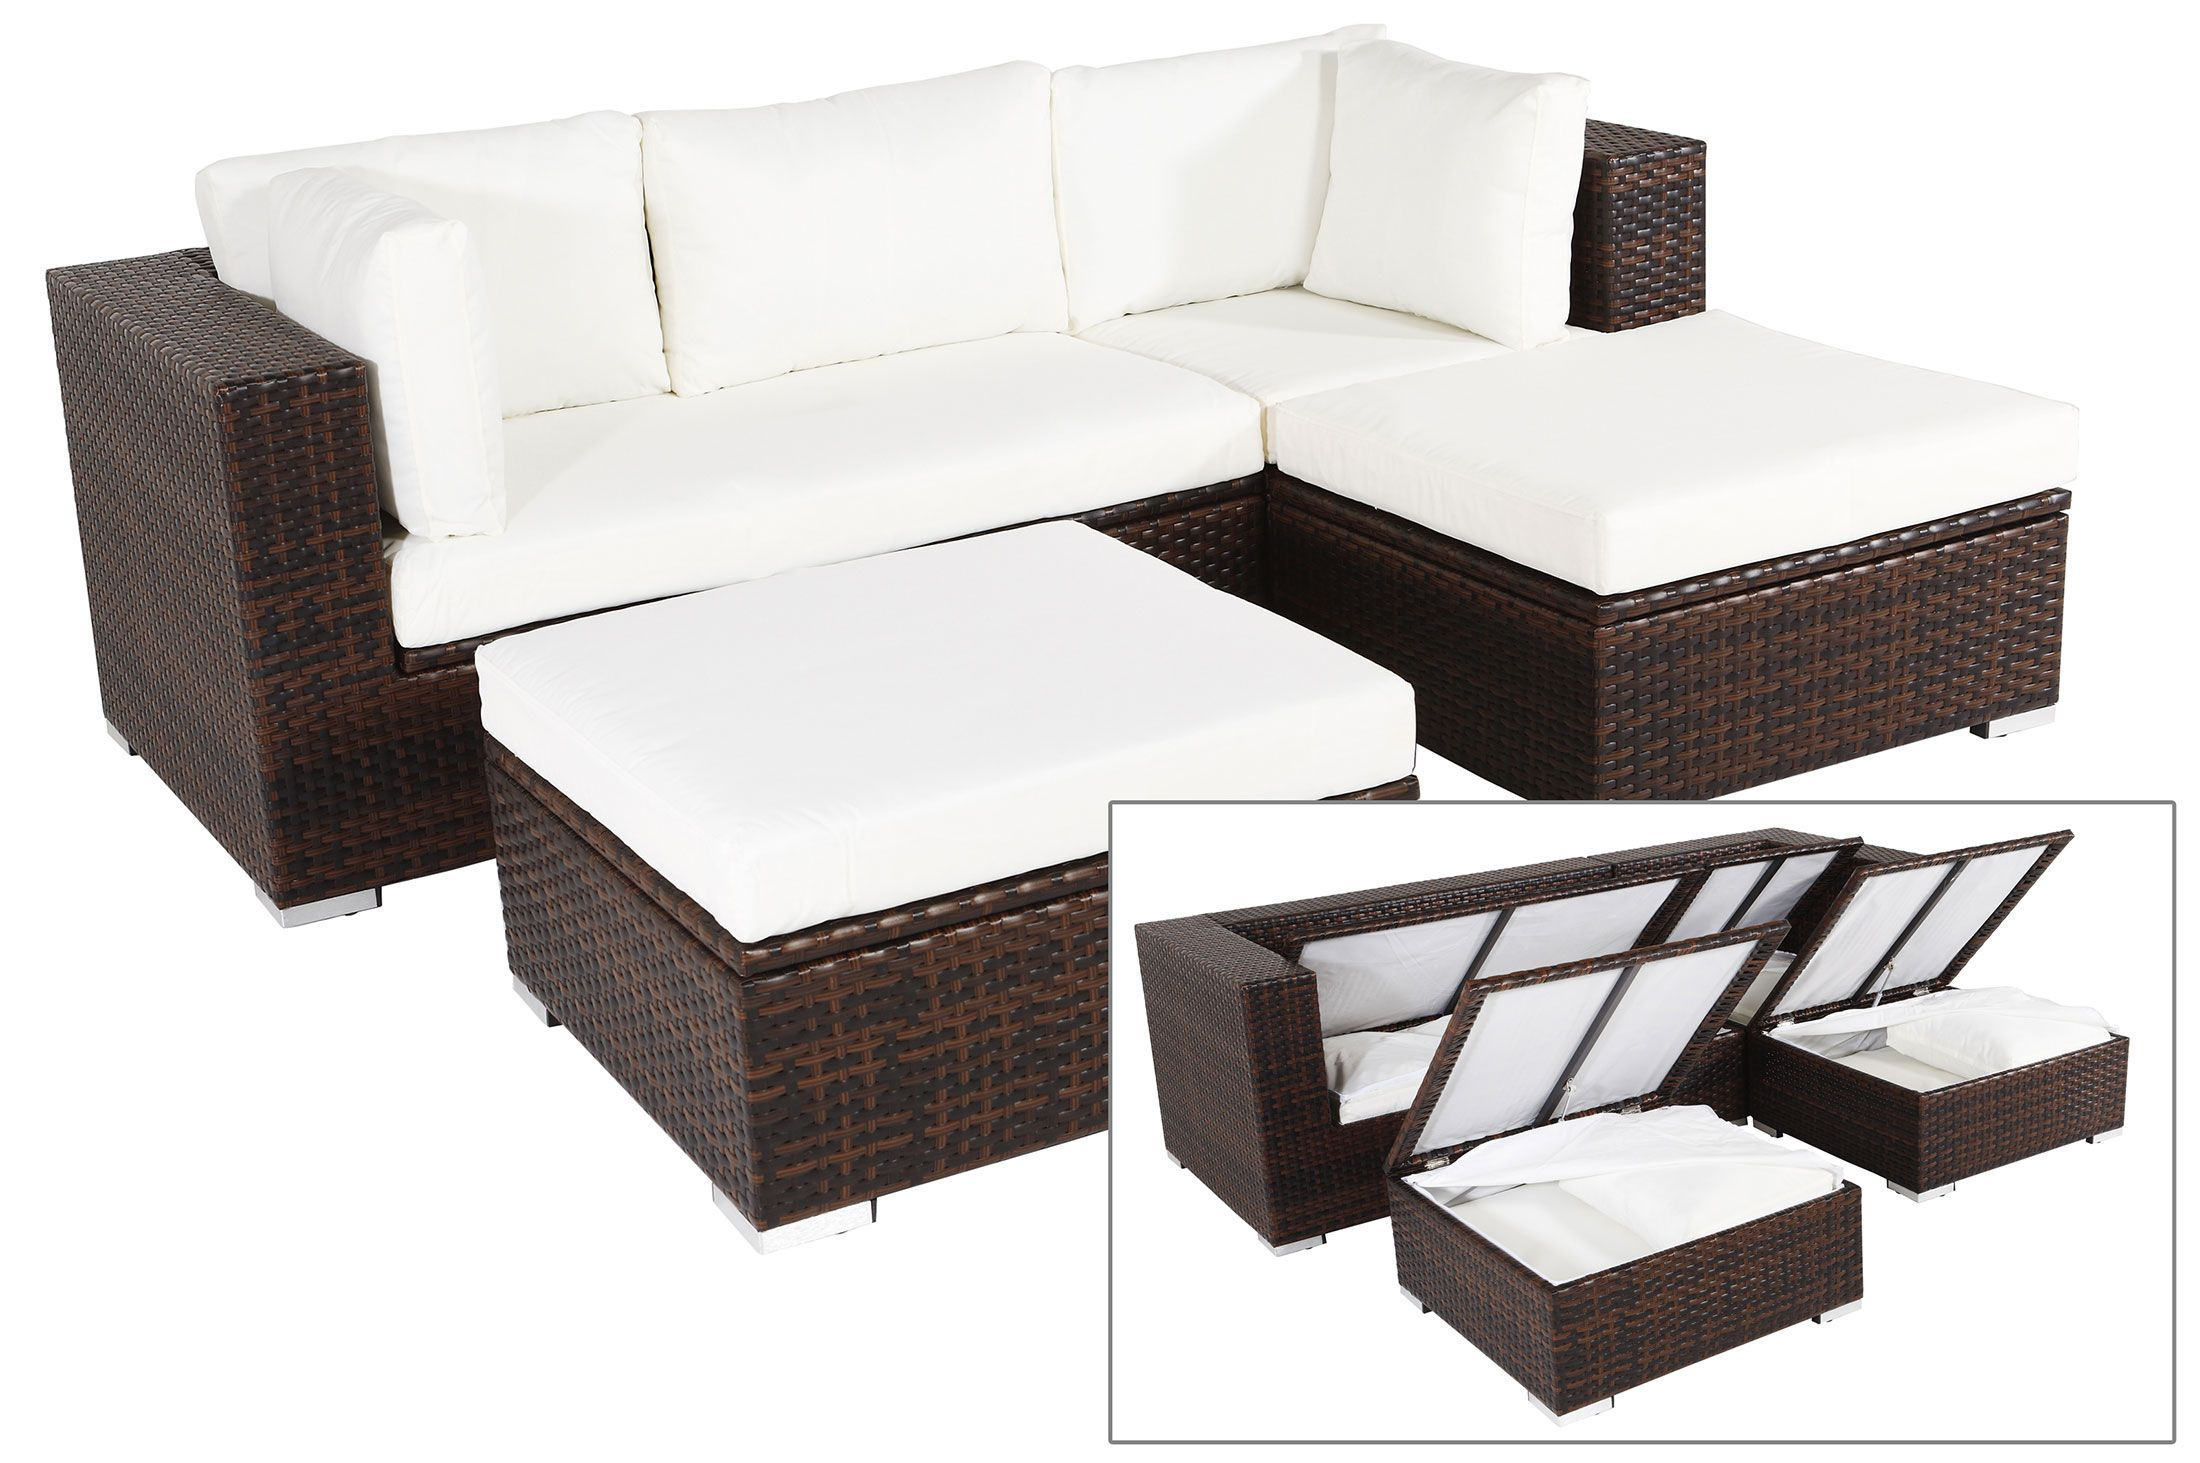 gartenmbel rattan set finest details about rattan garden. Black Bedroom Furniture Sets. Home Design Ideas